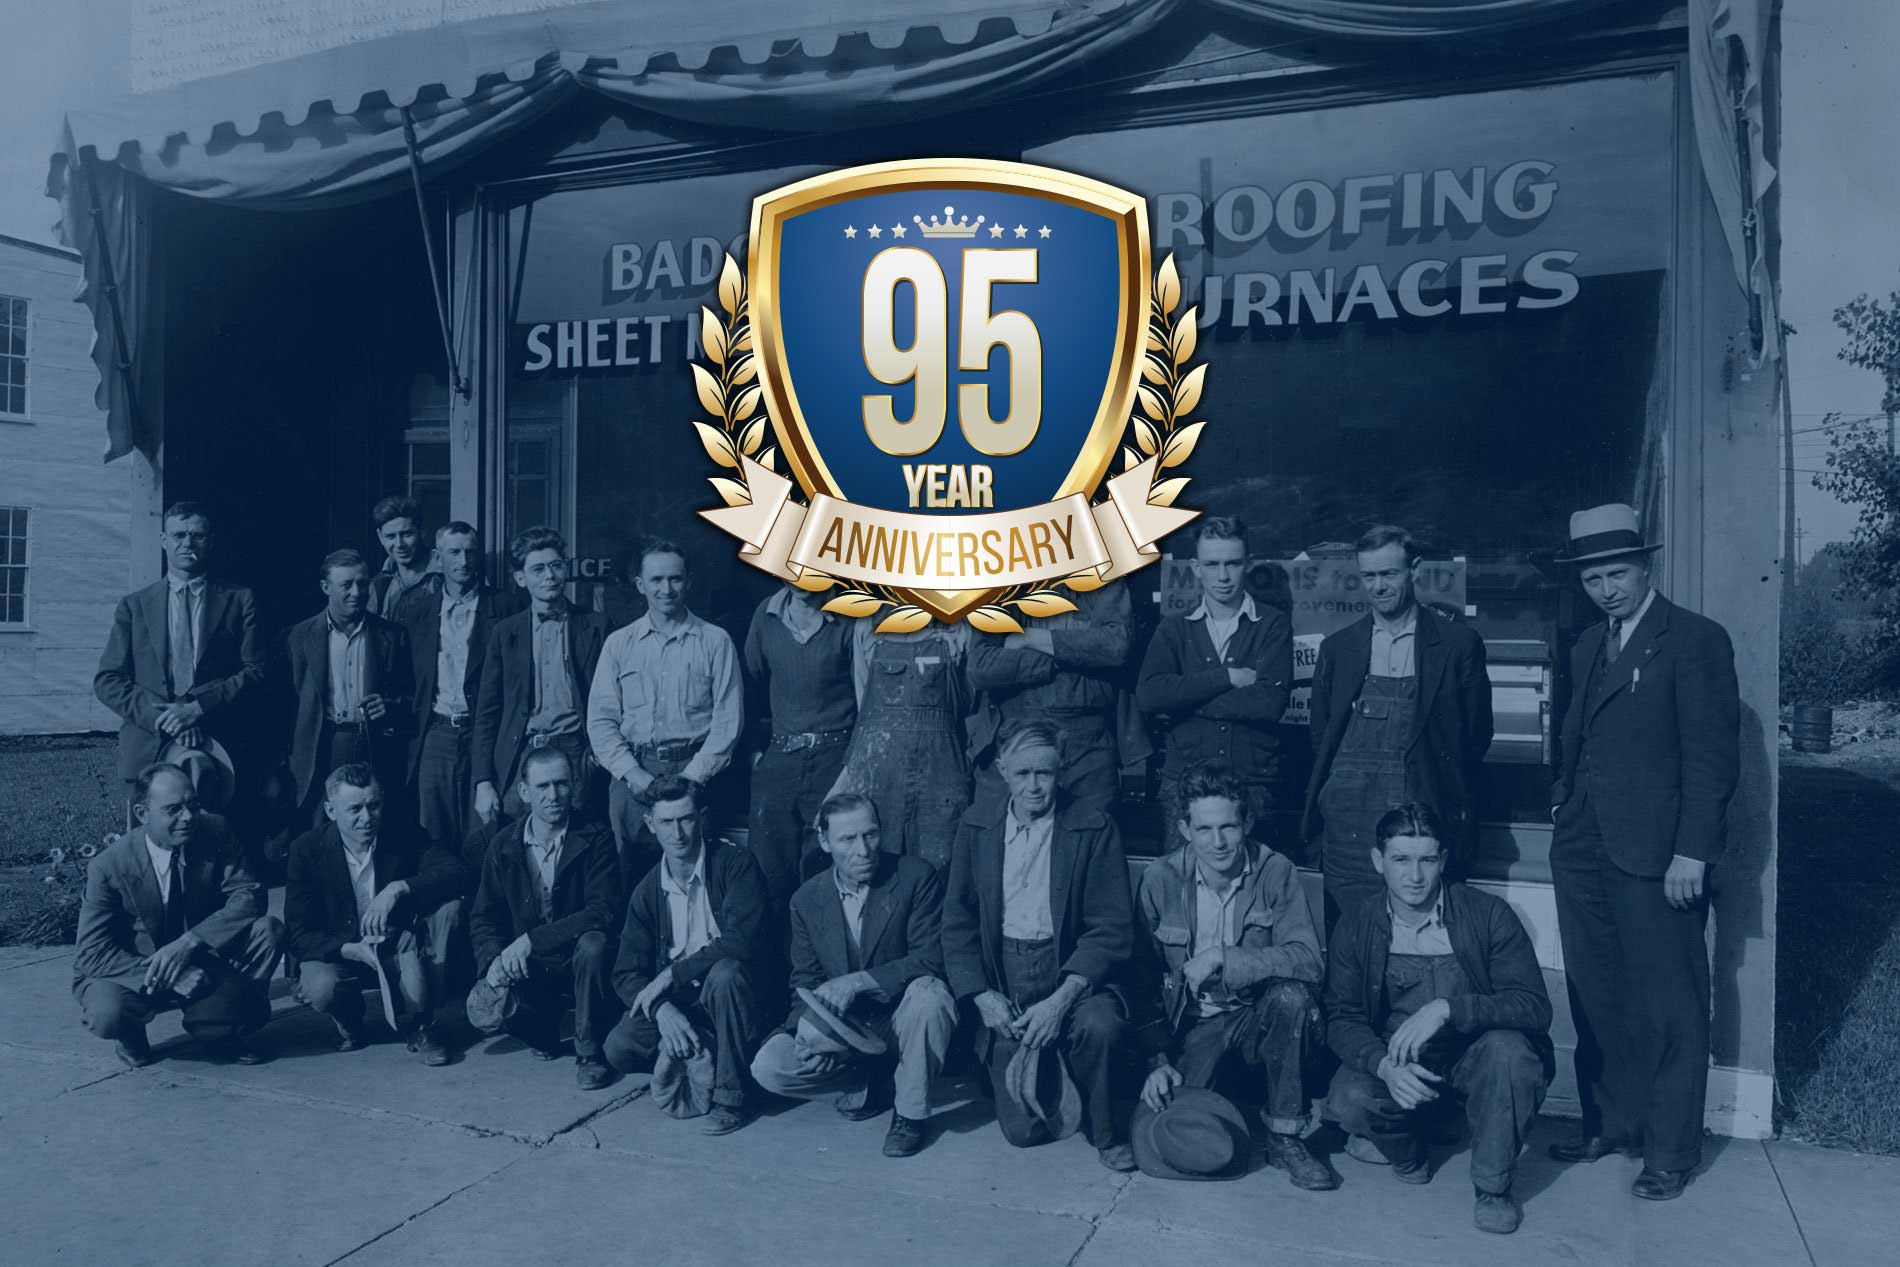 Badger Sheet Metal Works celebrates 95th anniversary